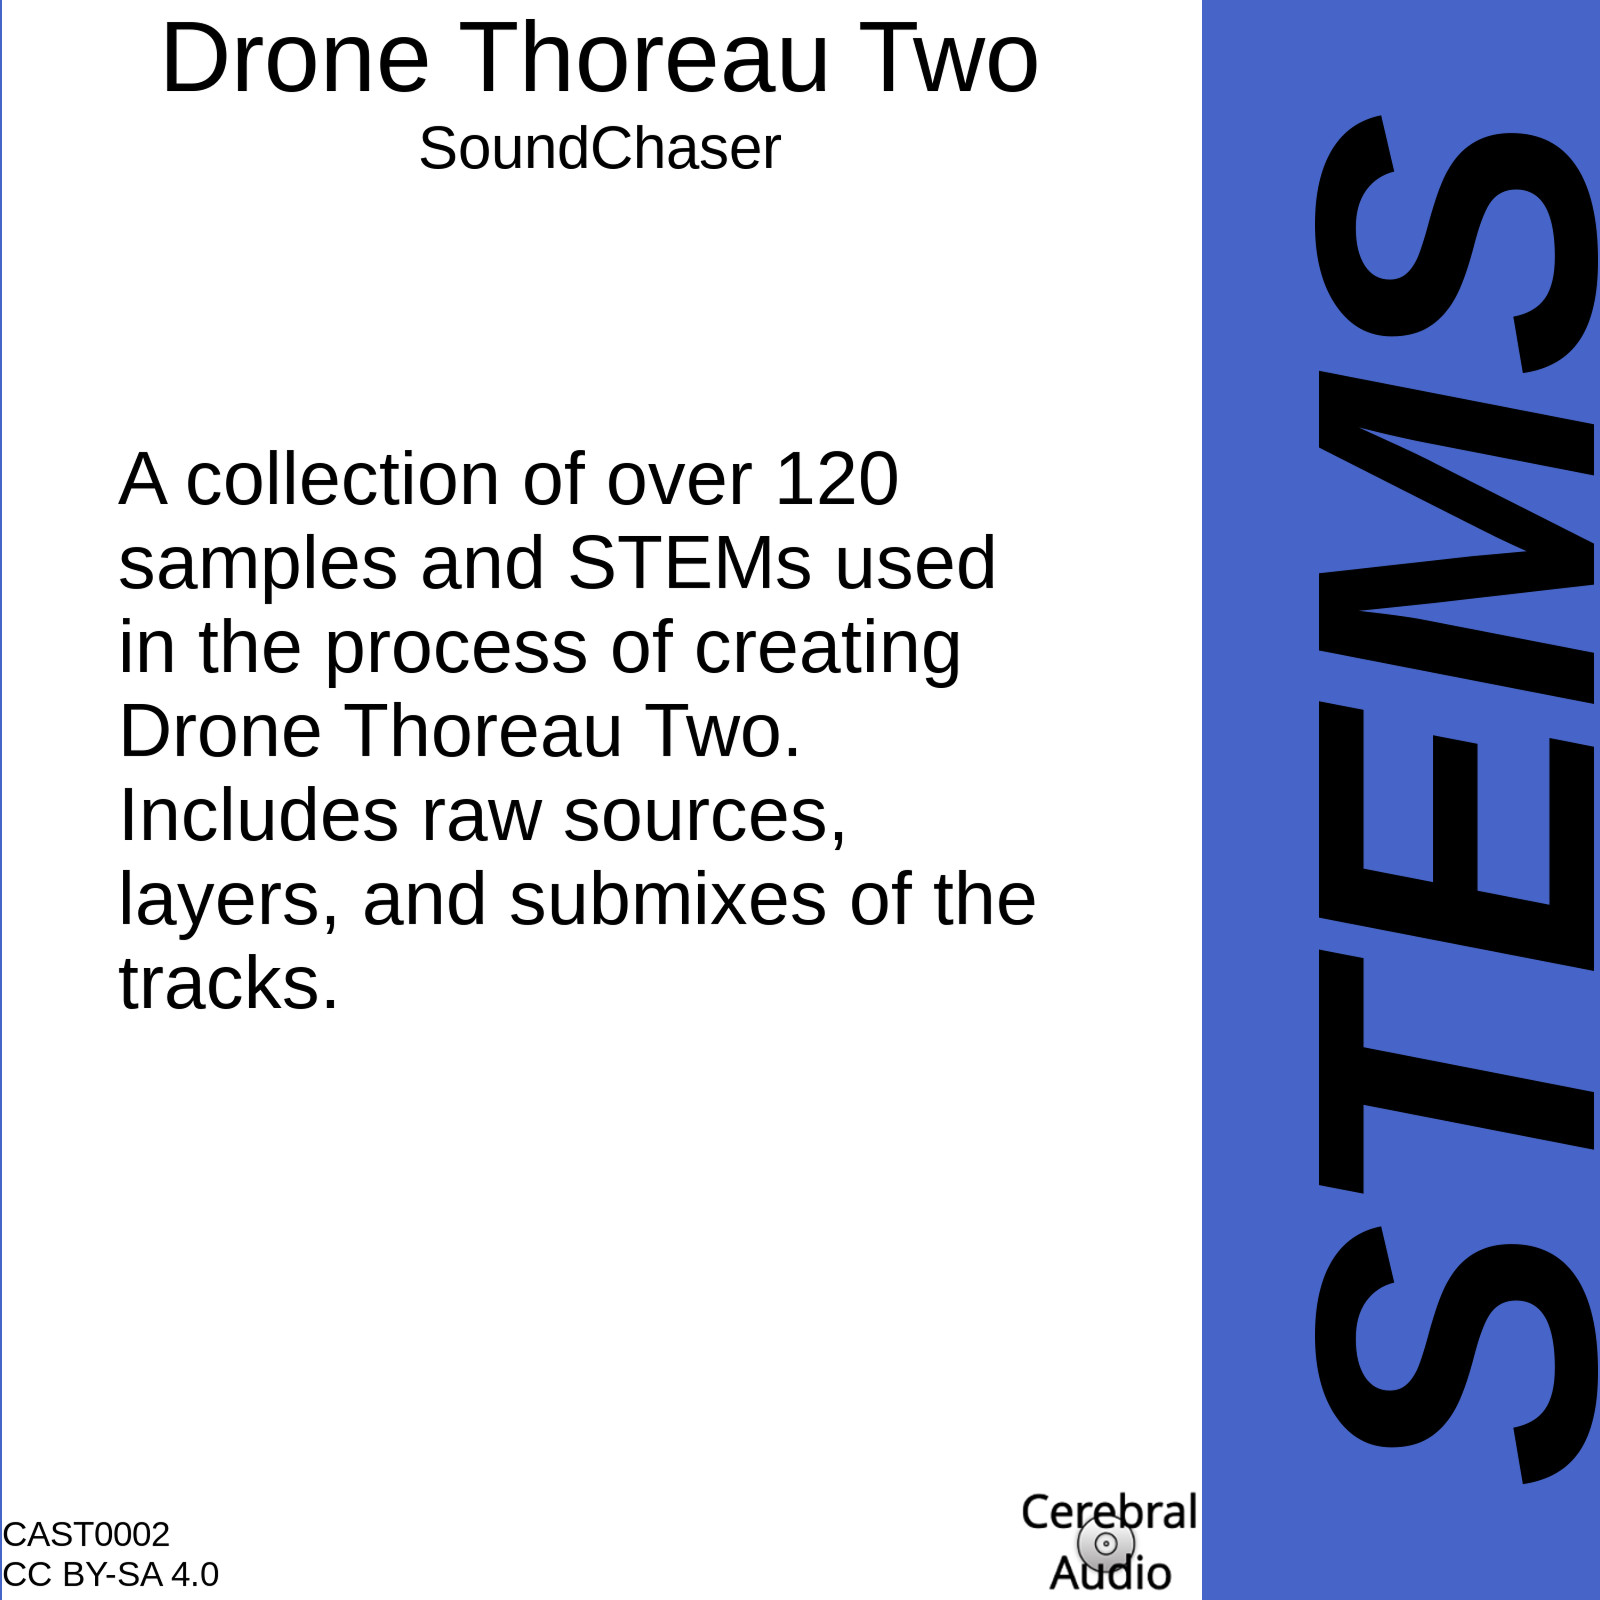 Drone Thoreau Two STEMS